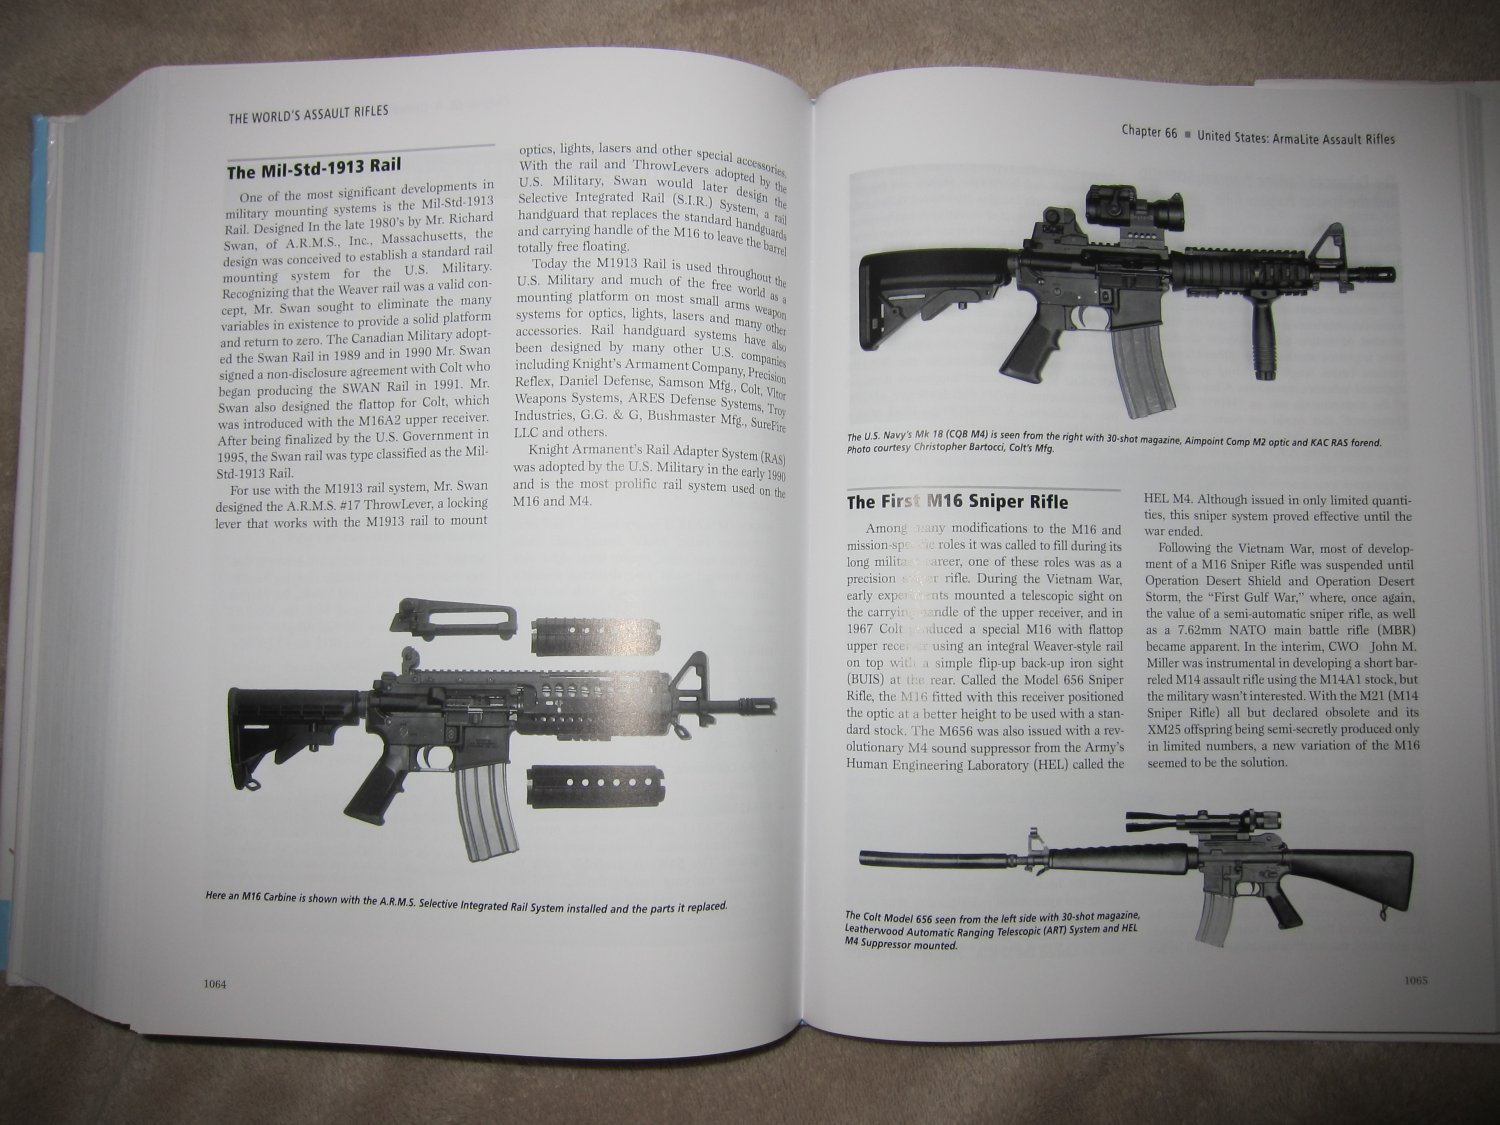 Assault Rifles of the World Book Gary Paul Johnston 2 <!  :en  >The Worlds Assault Rifles: Best and Most Complete Book on Military Infantry Assault Rifles (and Battle Rifles) Ever Written?  DefenseReview (DR) Highly Recommends It!<!  :  >